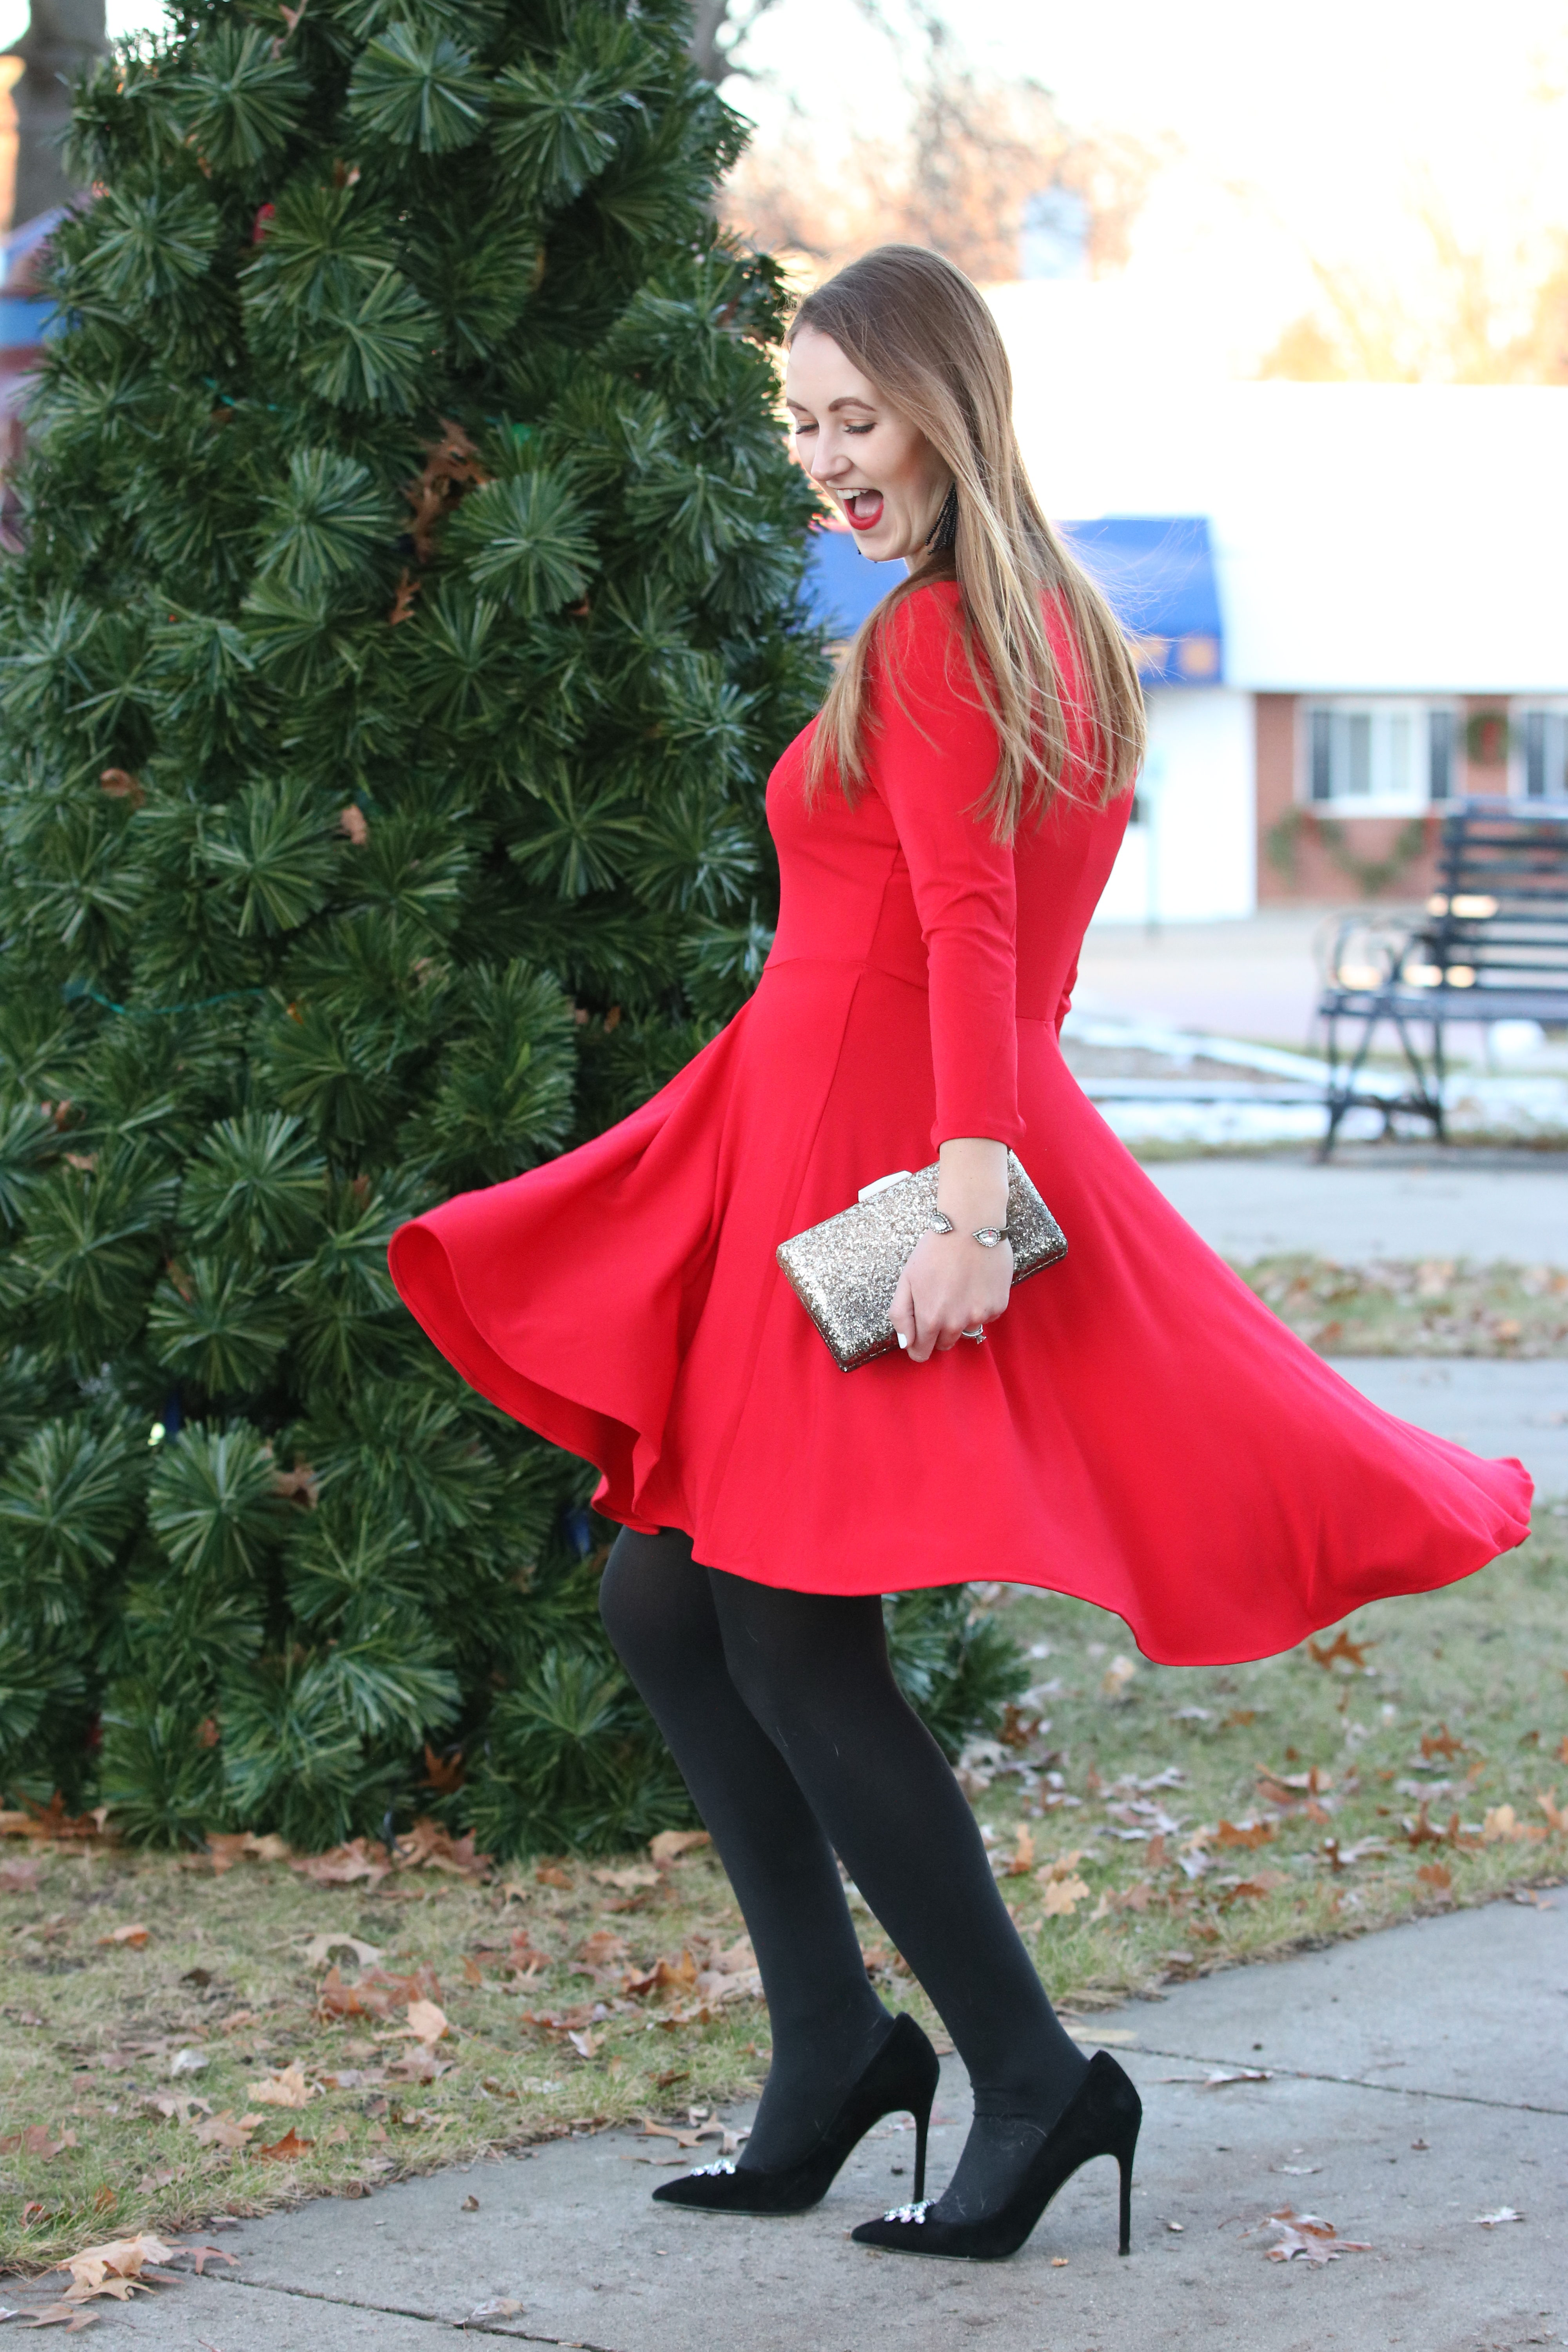 655fc87d48 Red Christmas Eve Dress - For The Love Of Glitter